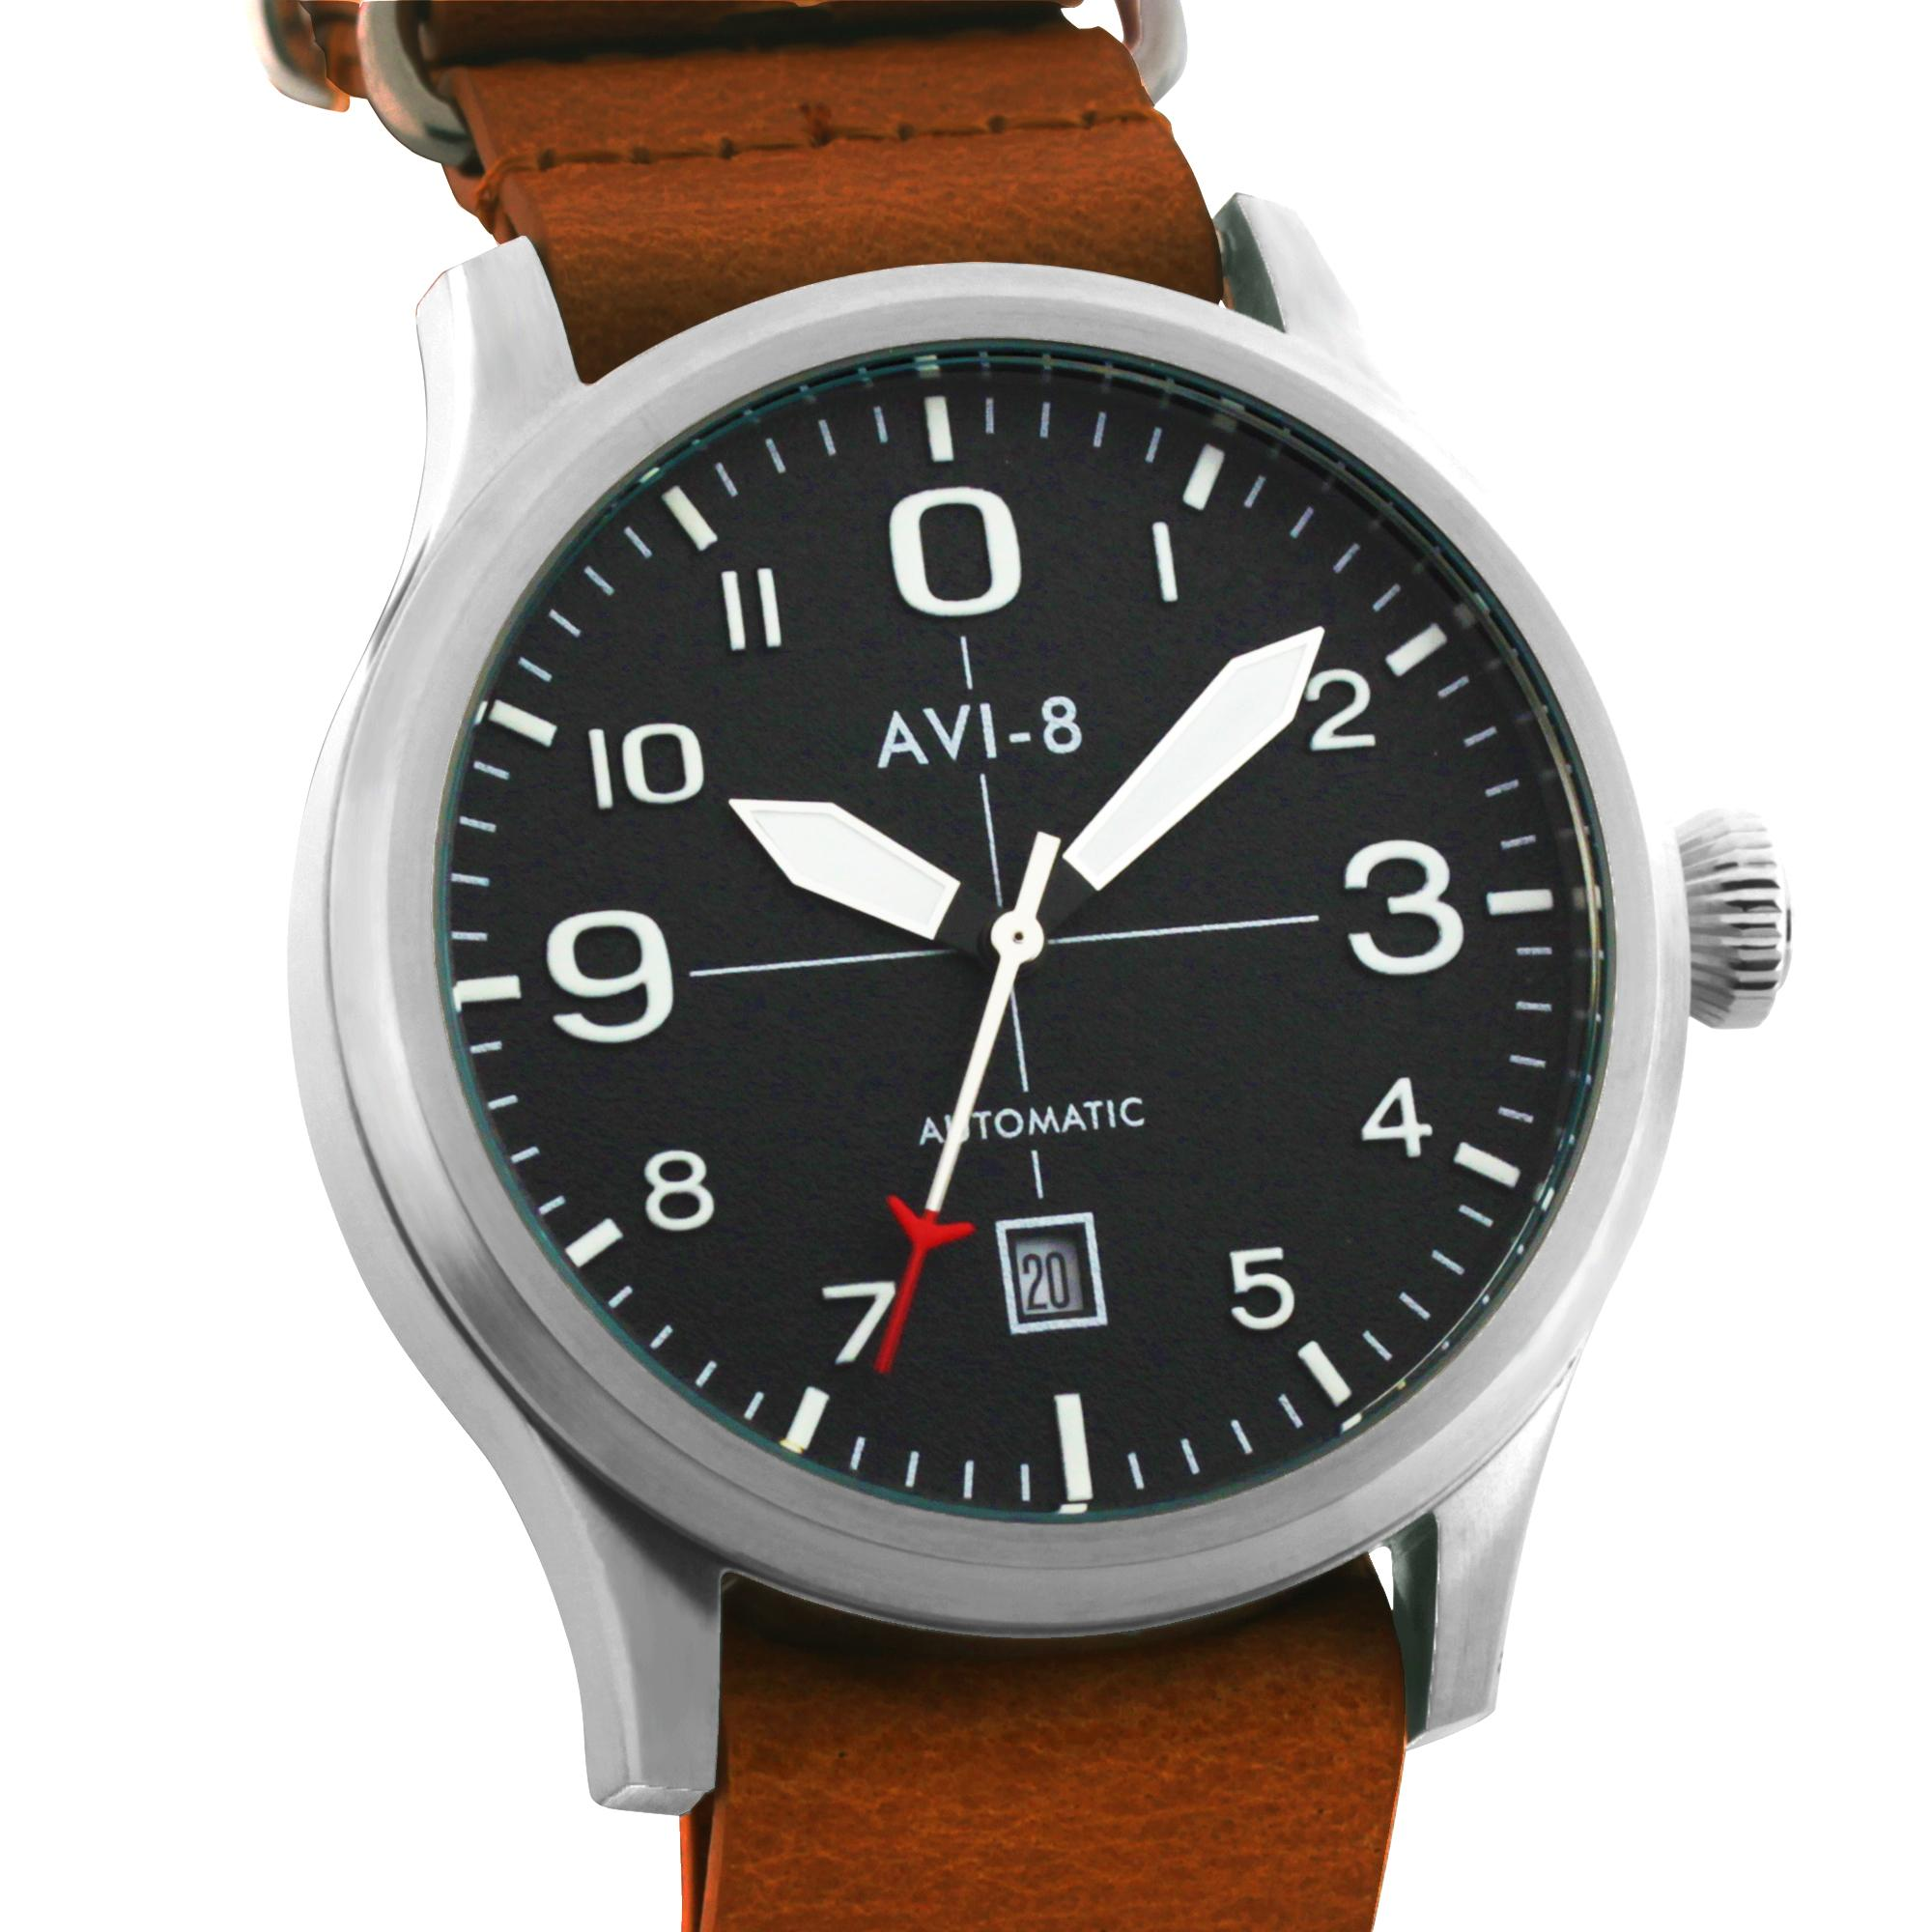 watches co pilot vintage main genesee watch inspired aviator